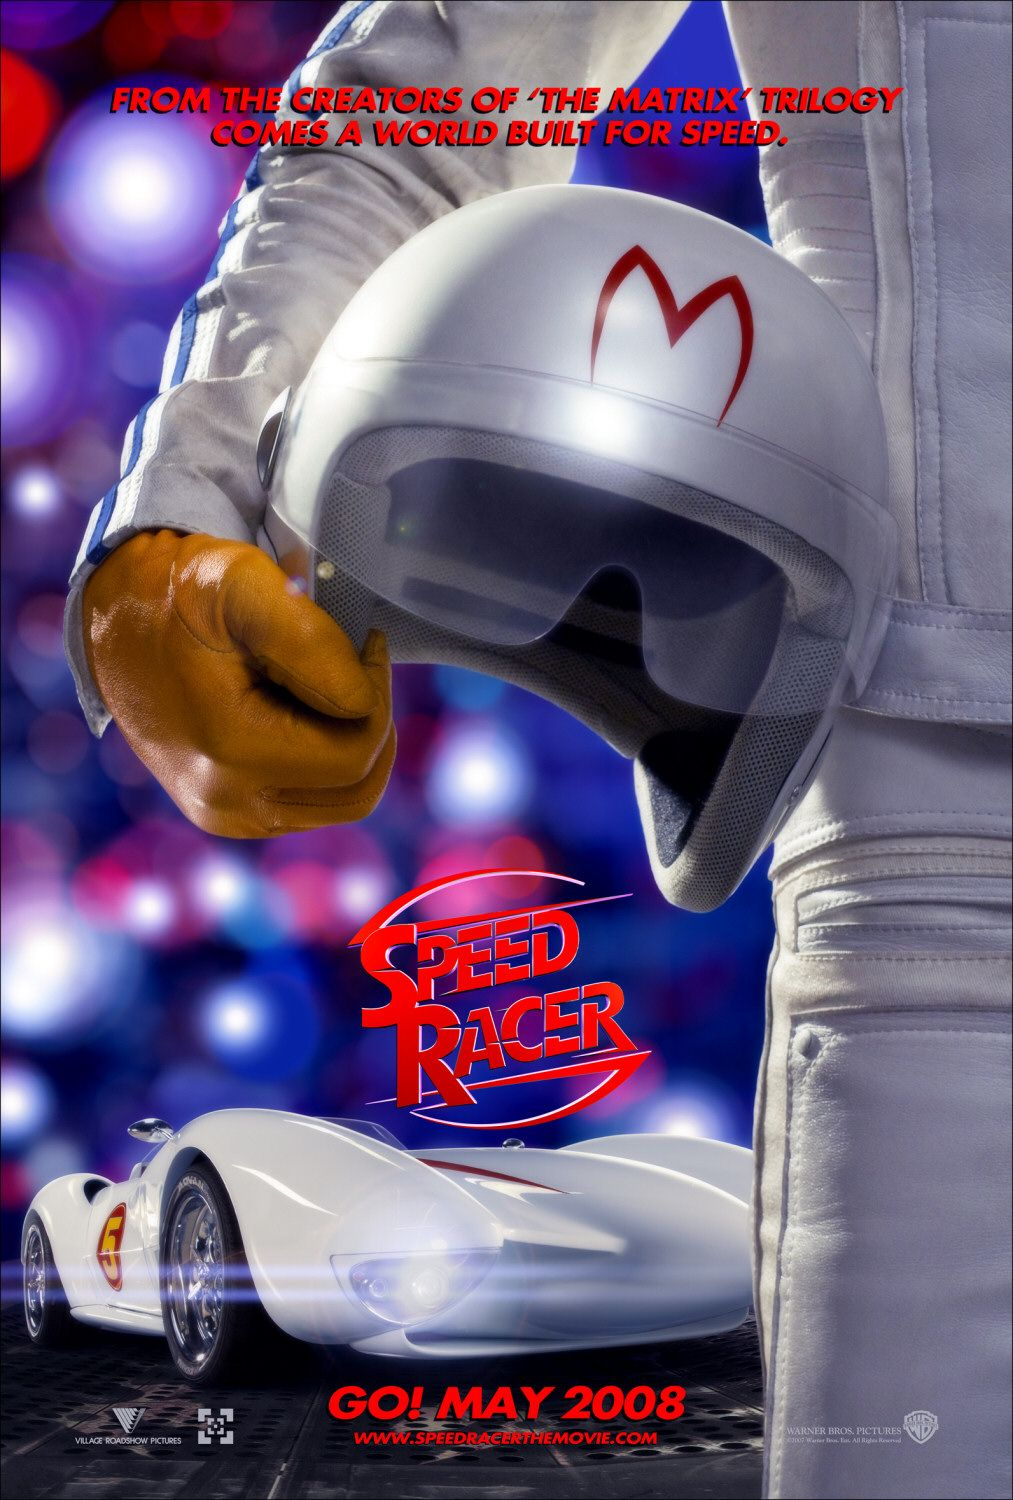 SPEED RACER • a 35mm Celluloid Sorceress presentation